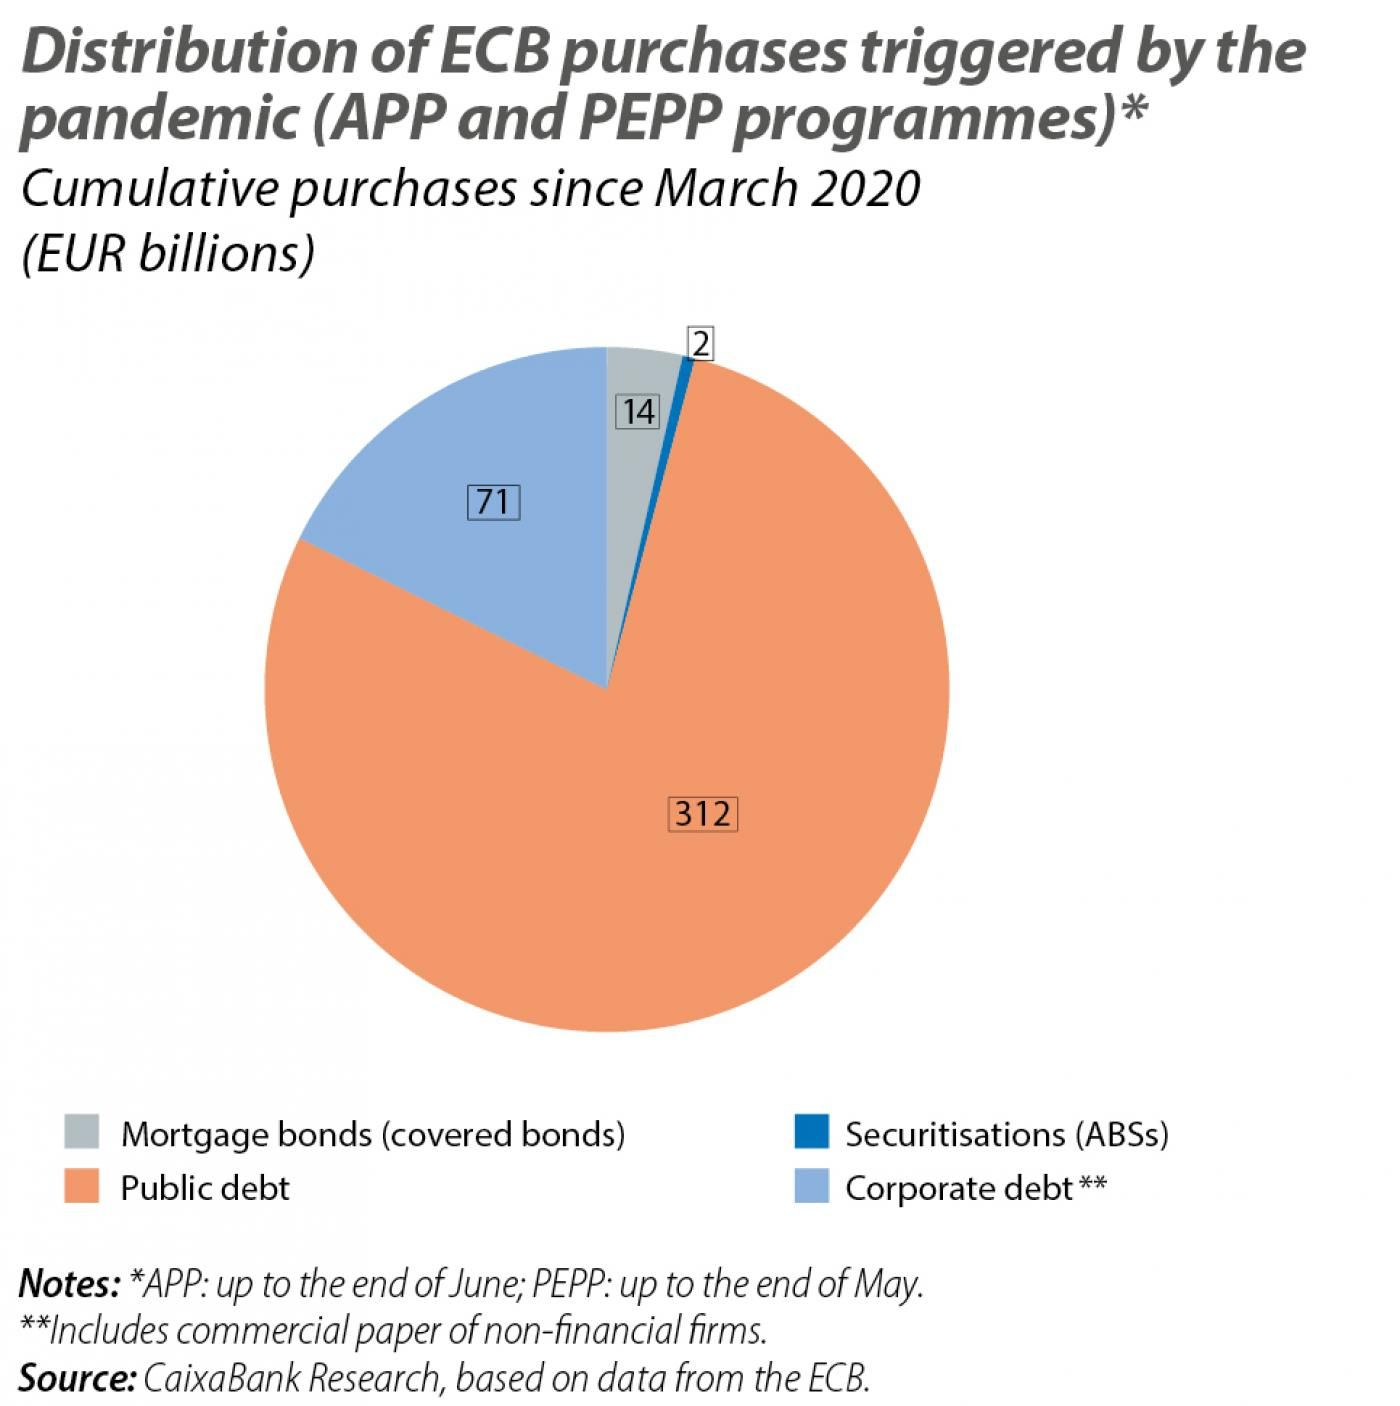 Distribution of ECB purchases triggered by the pandemic (APP and PEPP programmes)